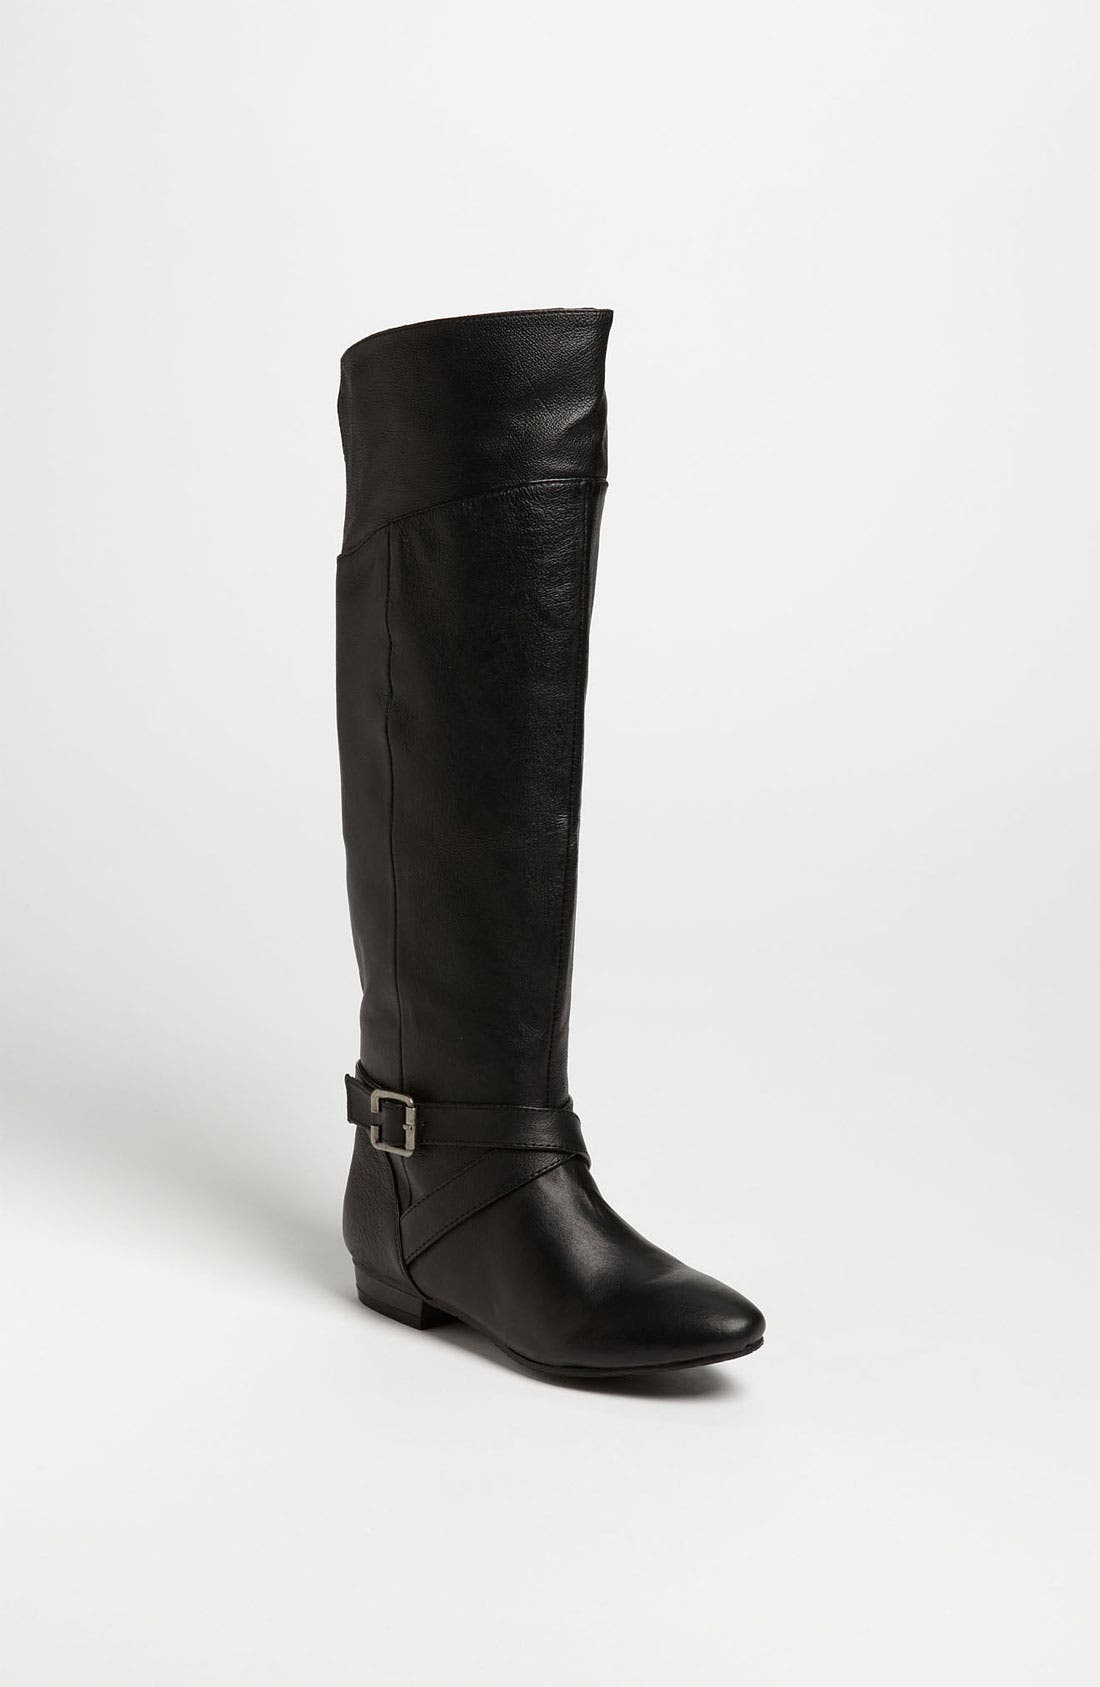 Alternate Image 1 Selected - Chinese Laundry 'Spring Street' Boot (Wide Calf)